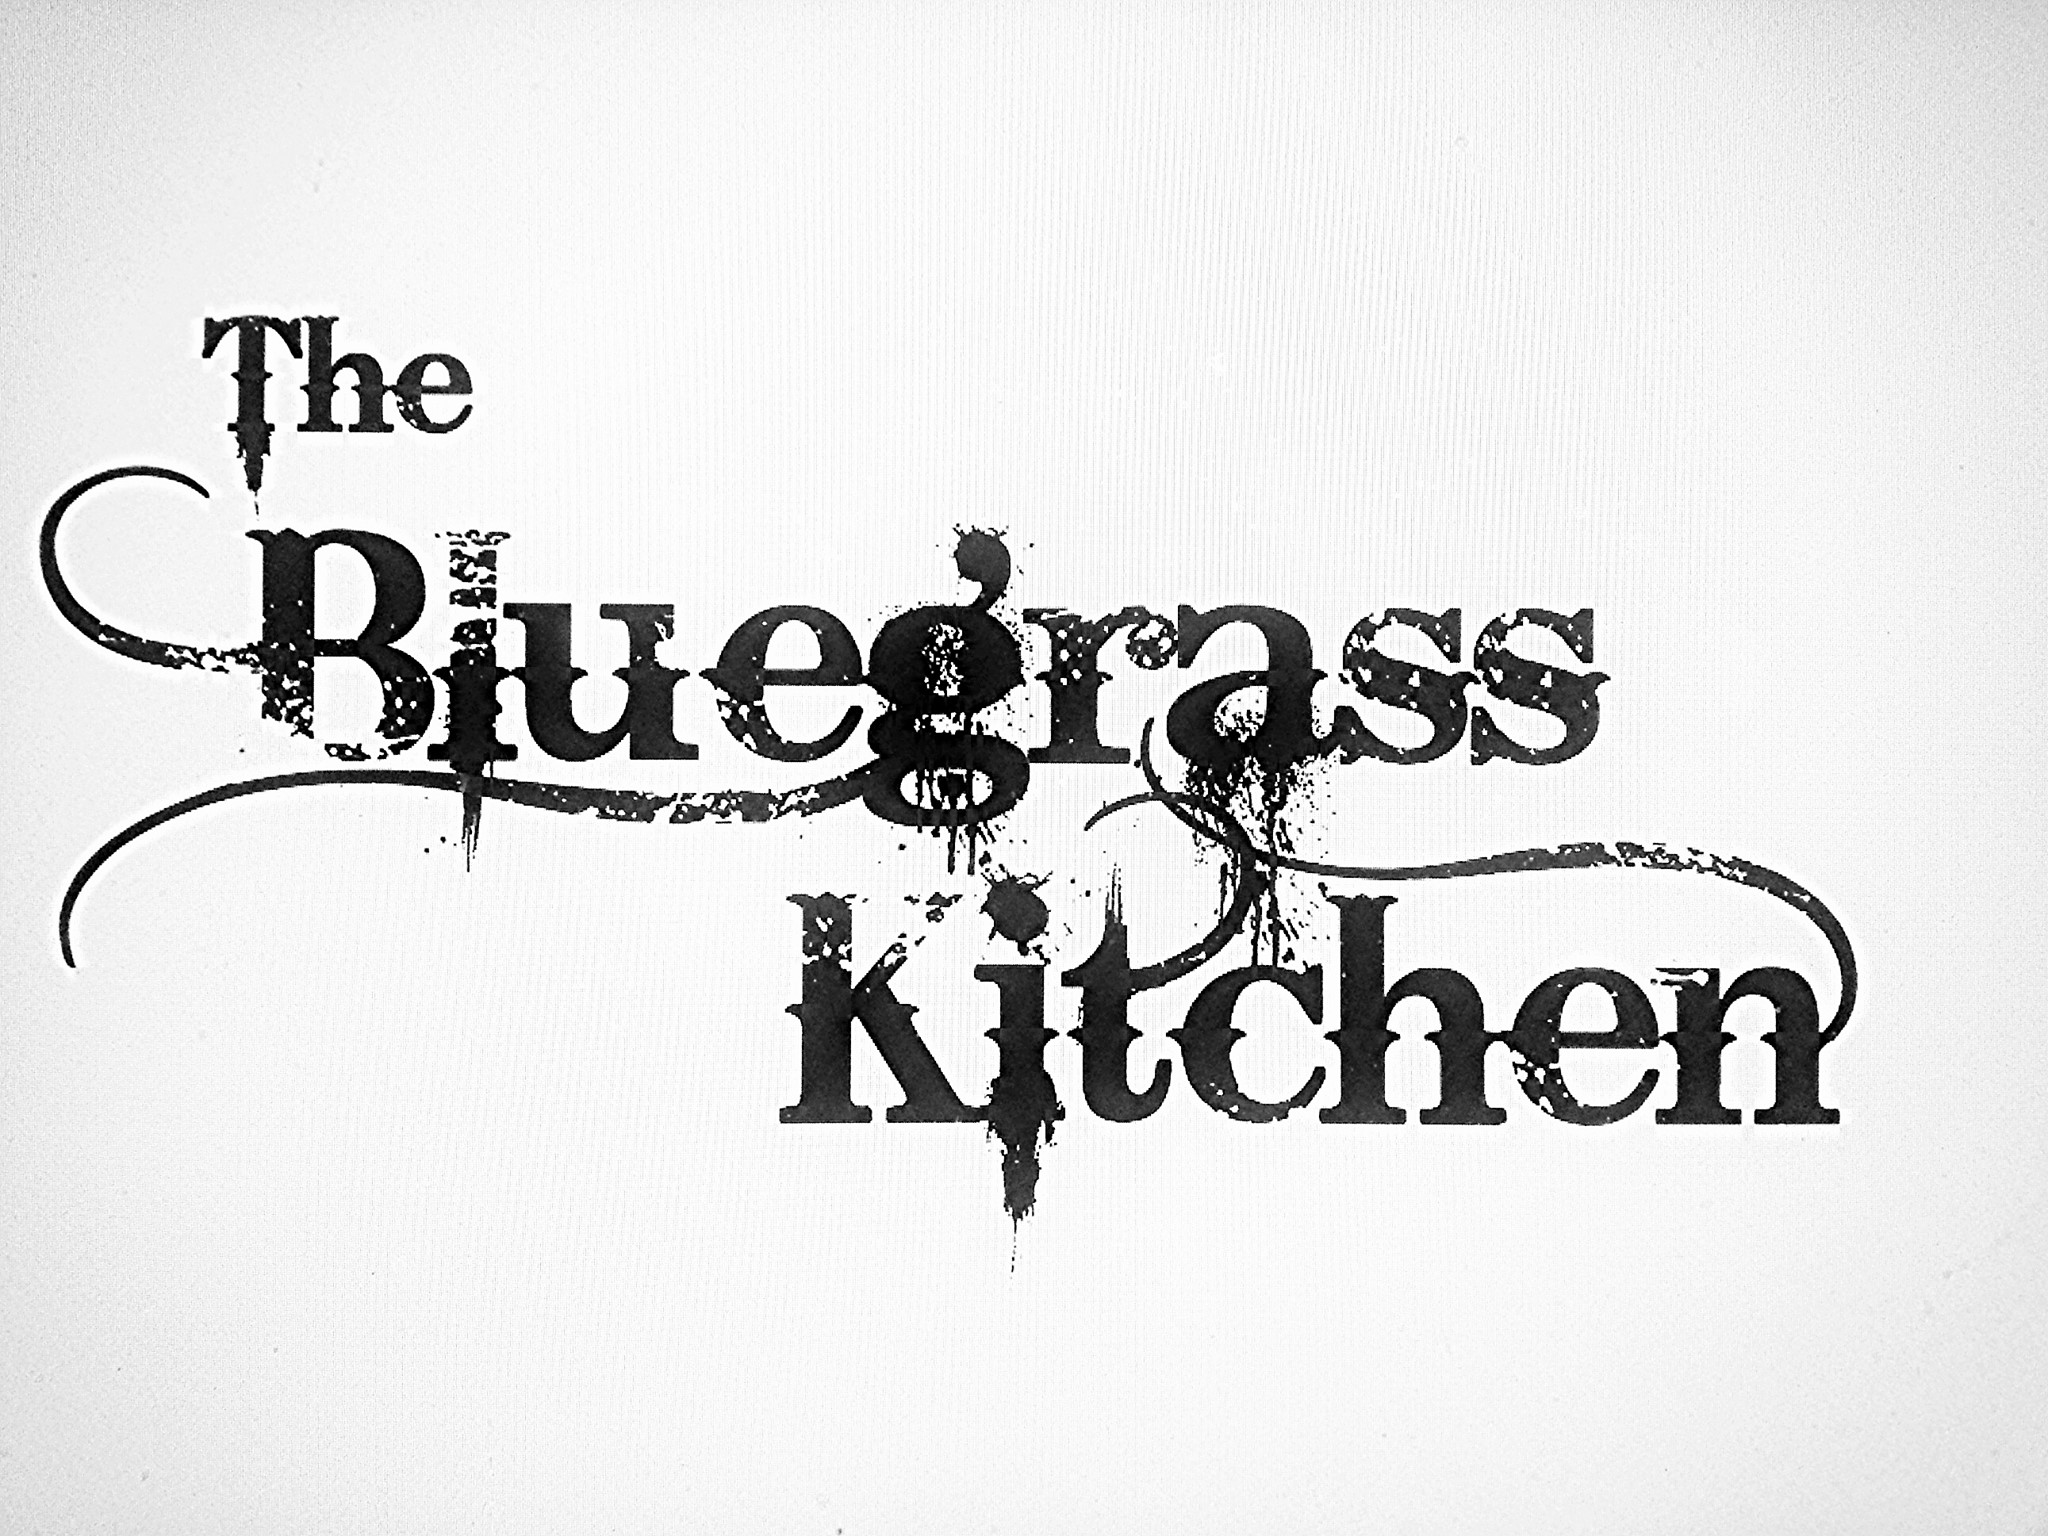 The Bluegrass Kitchen